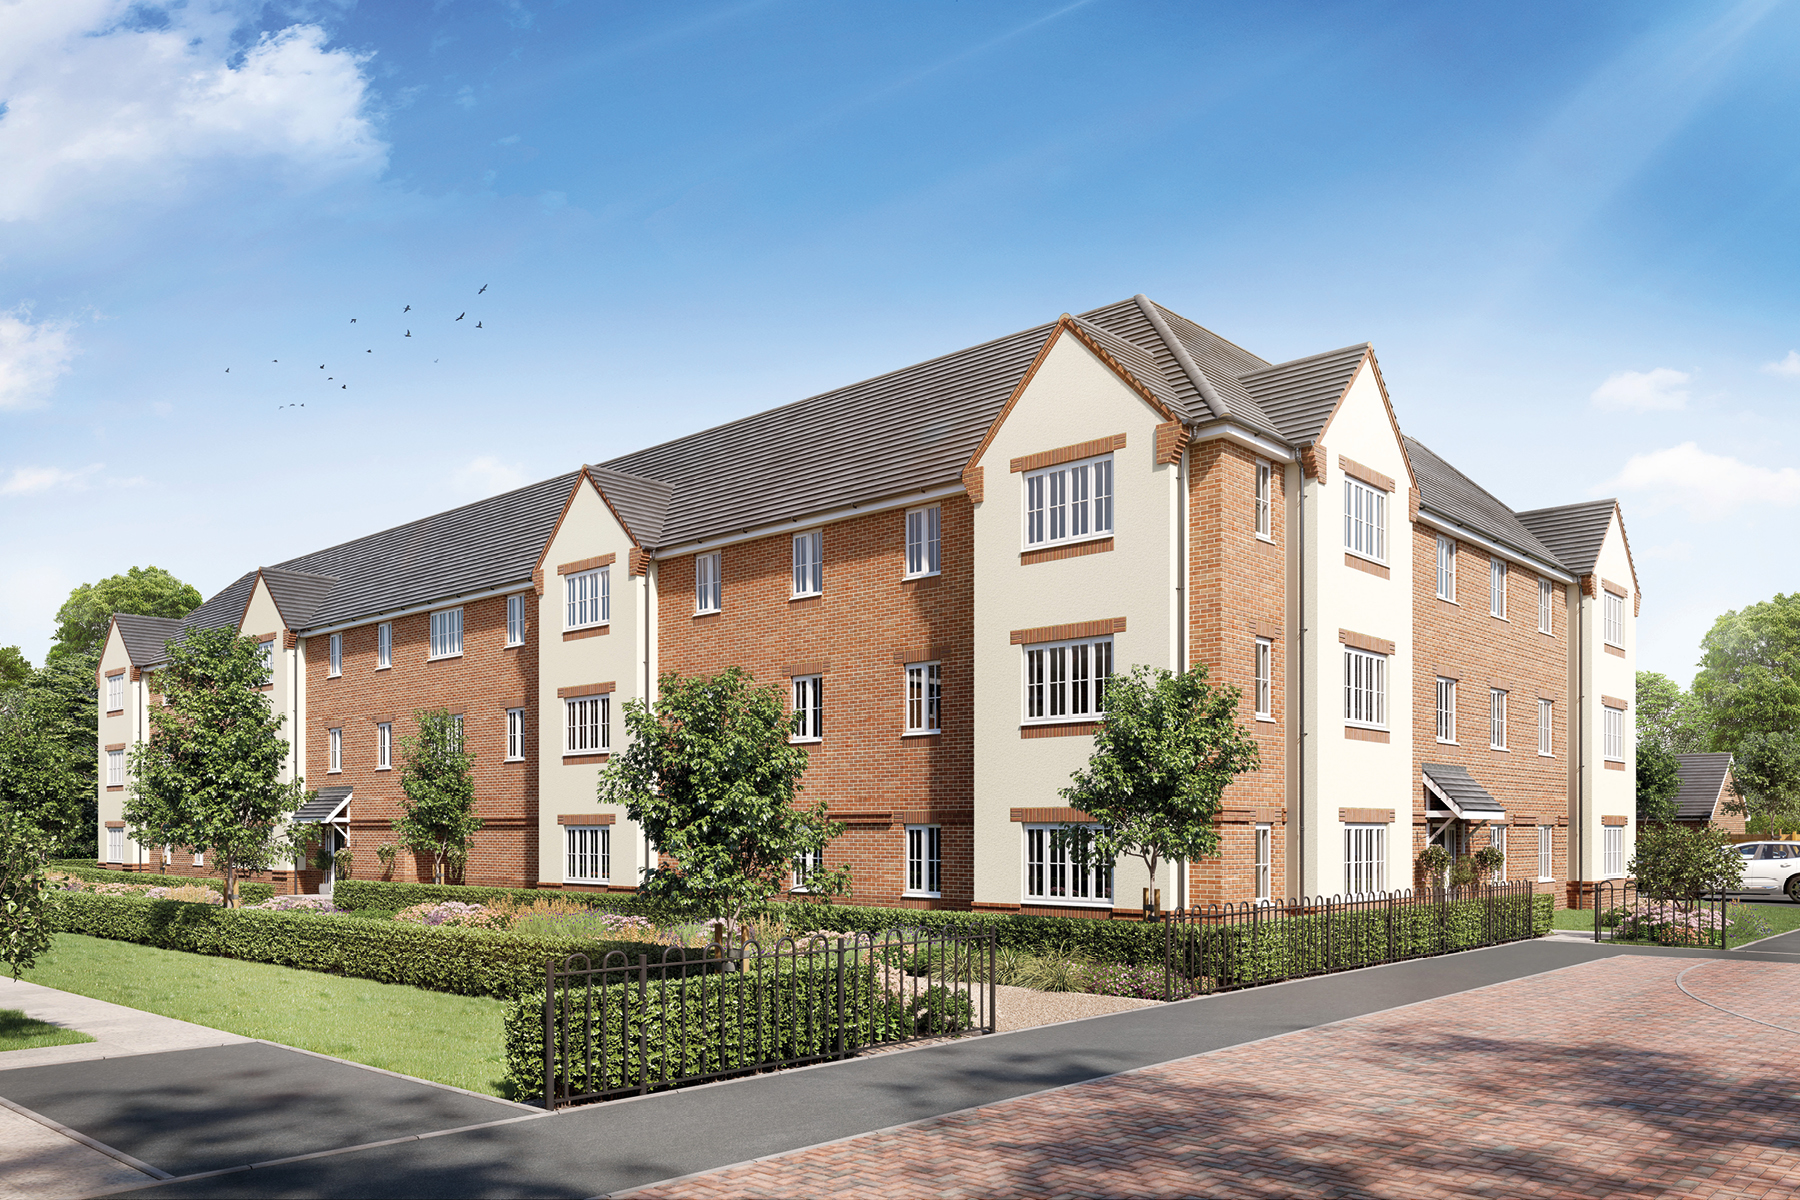 CGI Apartments - Aughton, Croston, Rufford and Lathom